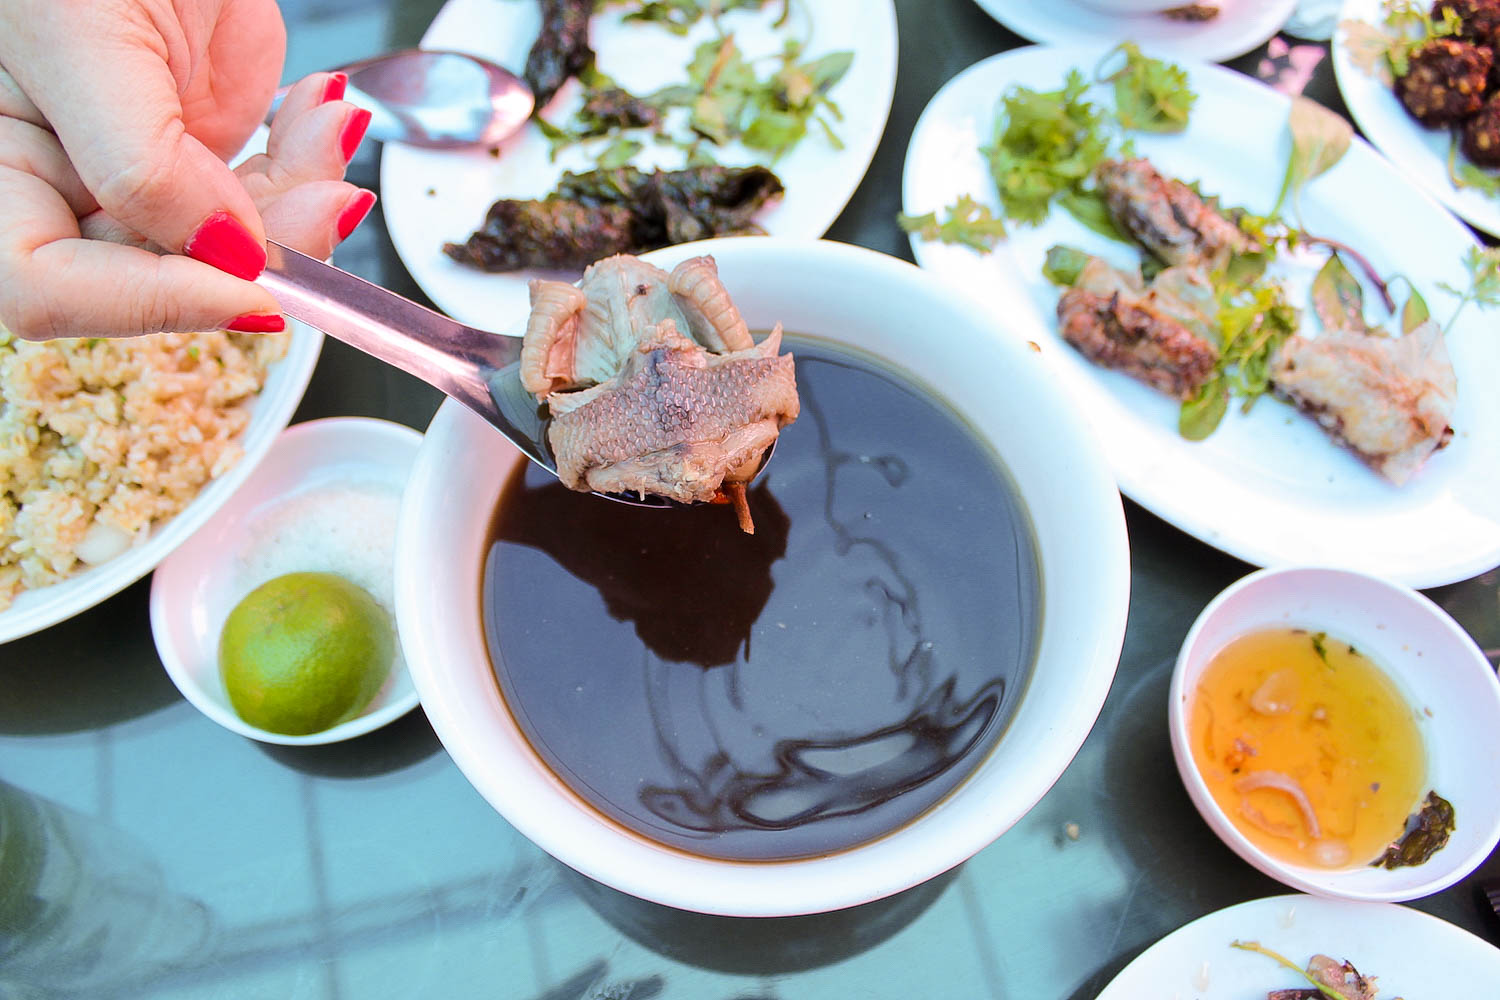 snake soup with snake meat